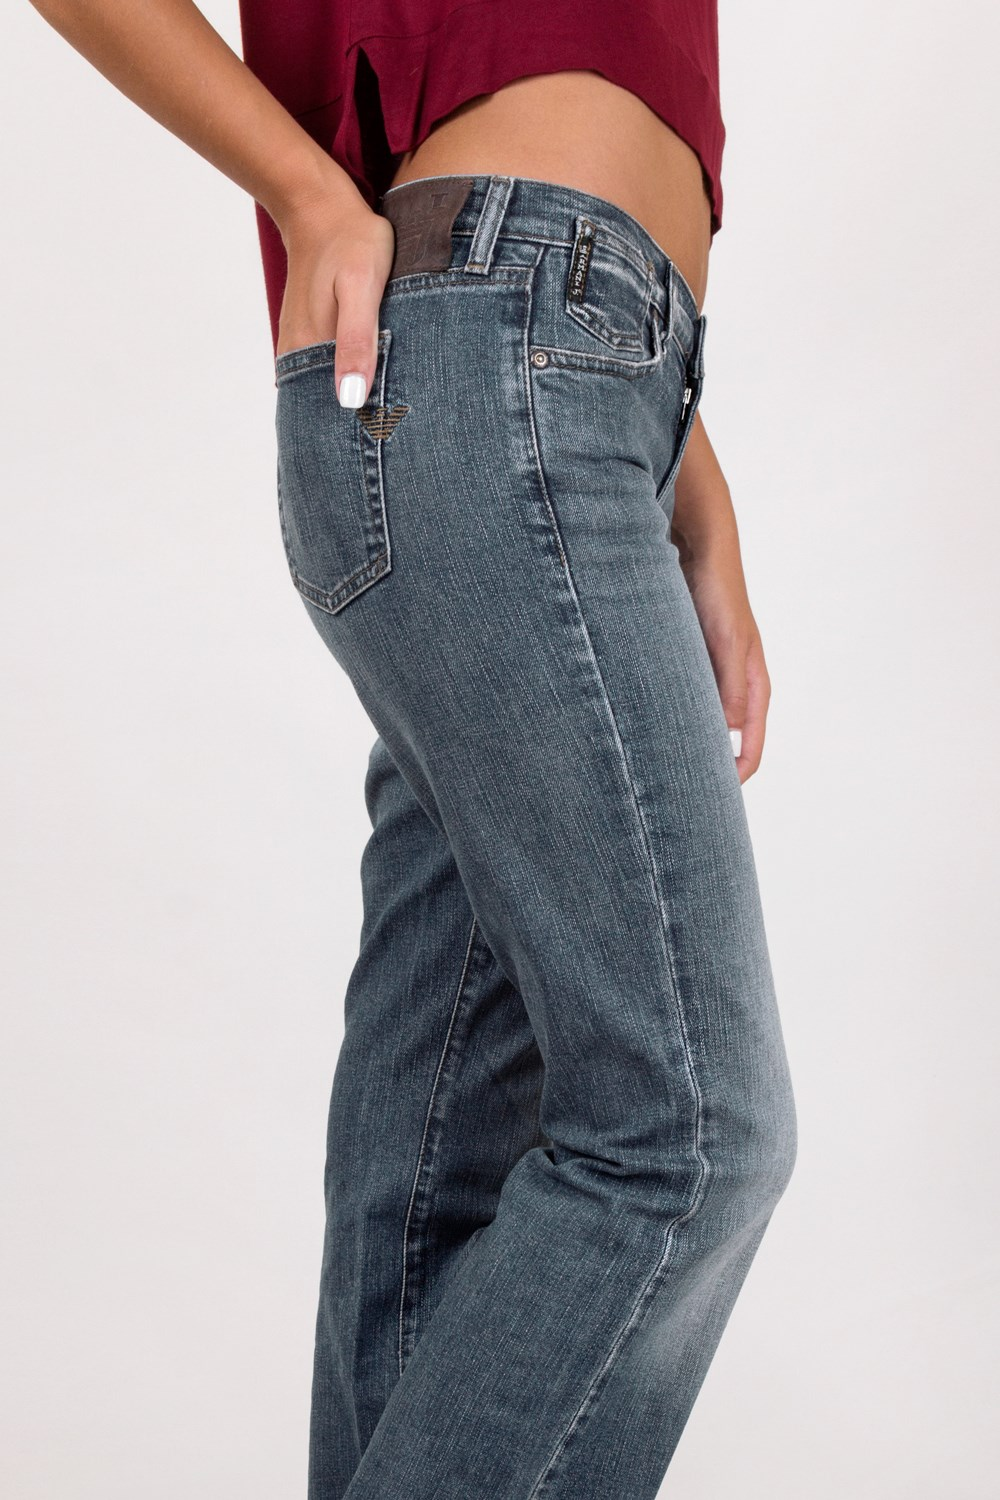 purchase cheap reasonable price lace up in Starbags Products, Clothing, Pants, Denim Pants, Light Blue Distressed Boot  Cut Jeans / Size: 28 - Fit: S, Starbags.gr